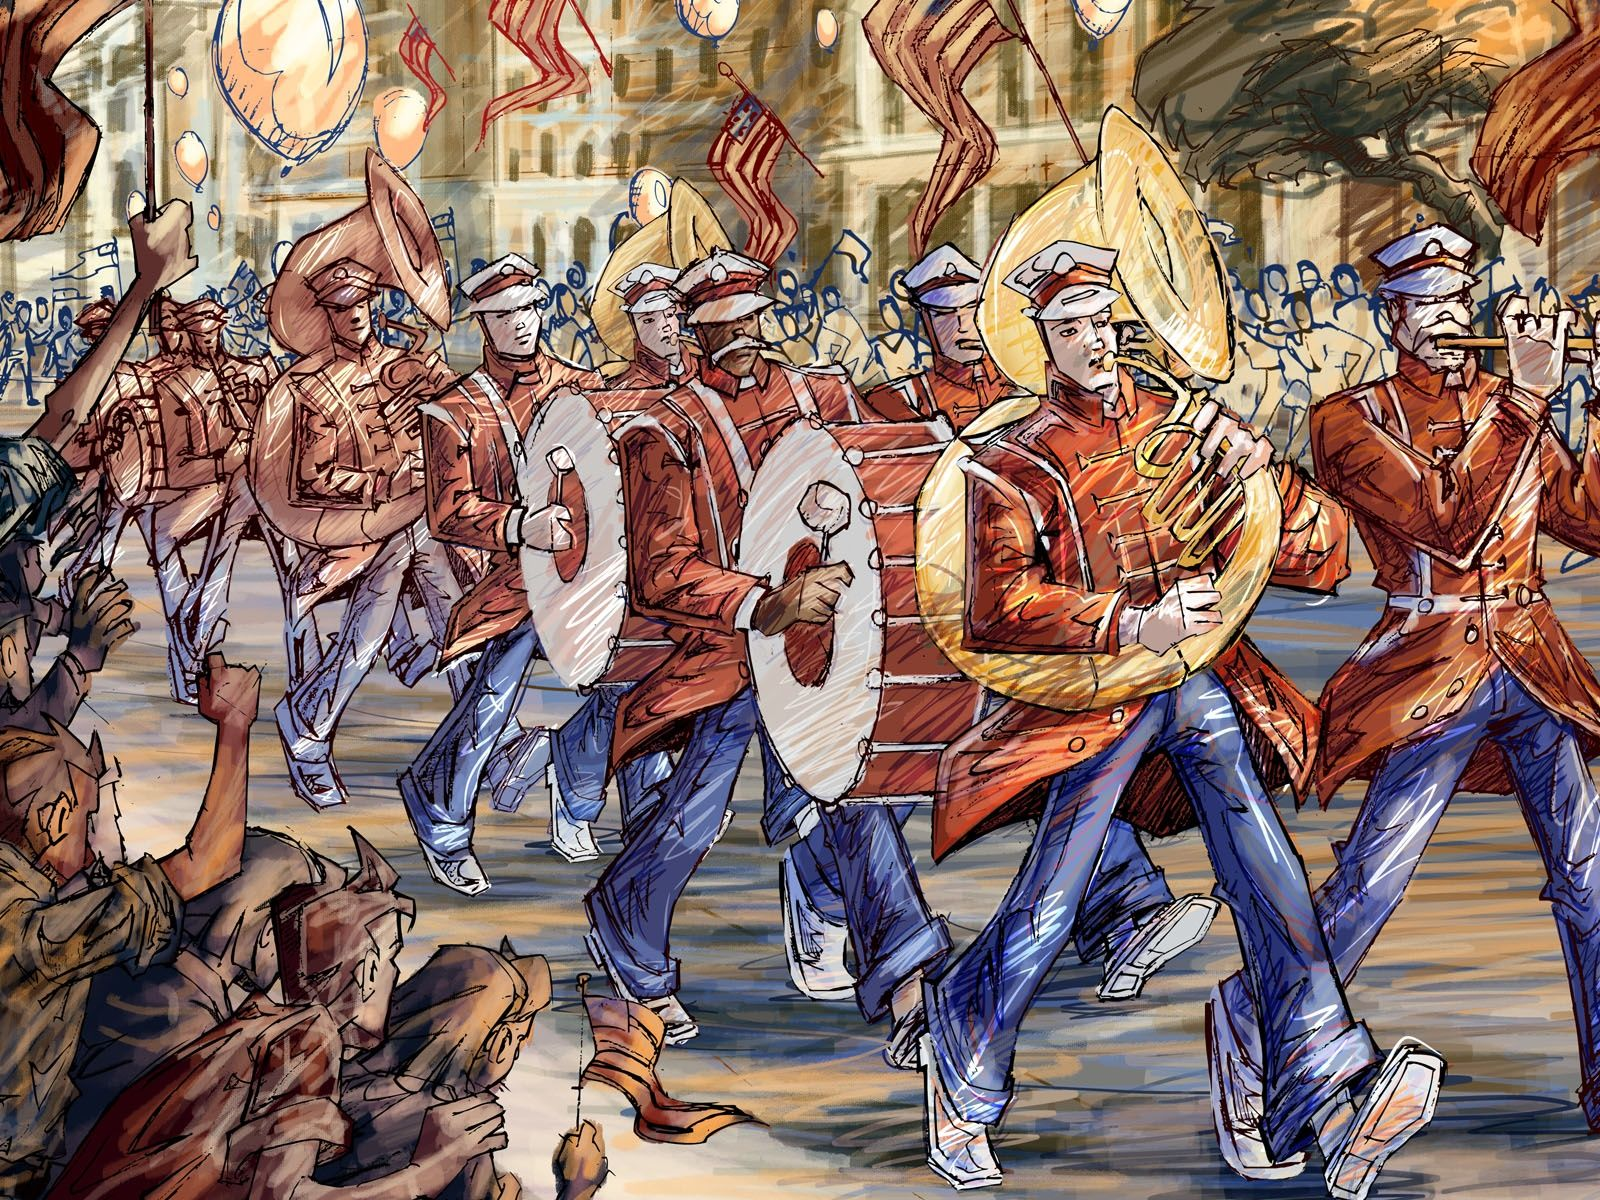 1600x1200 Marching band, hand-painted Desktop Wallpaper   1600x1200 ...